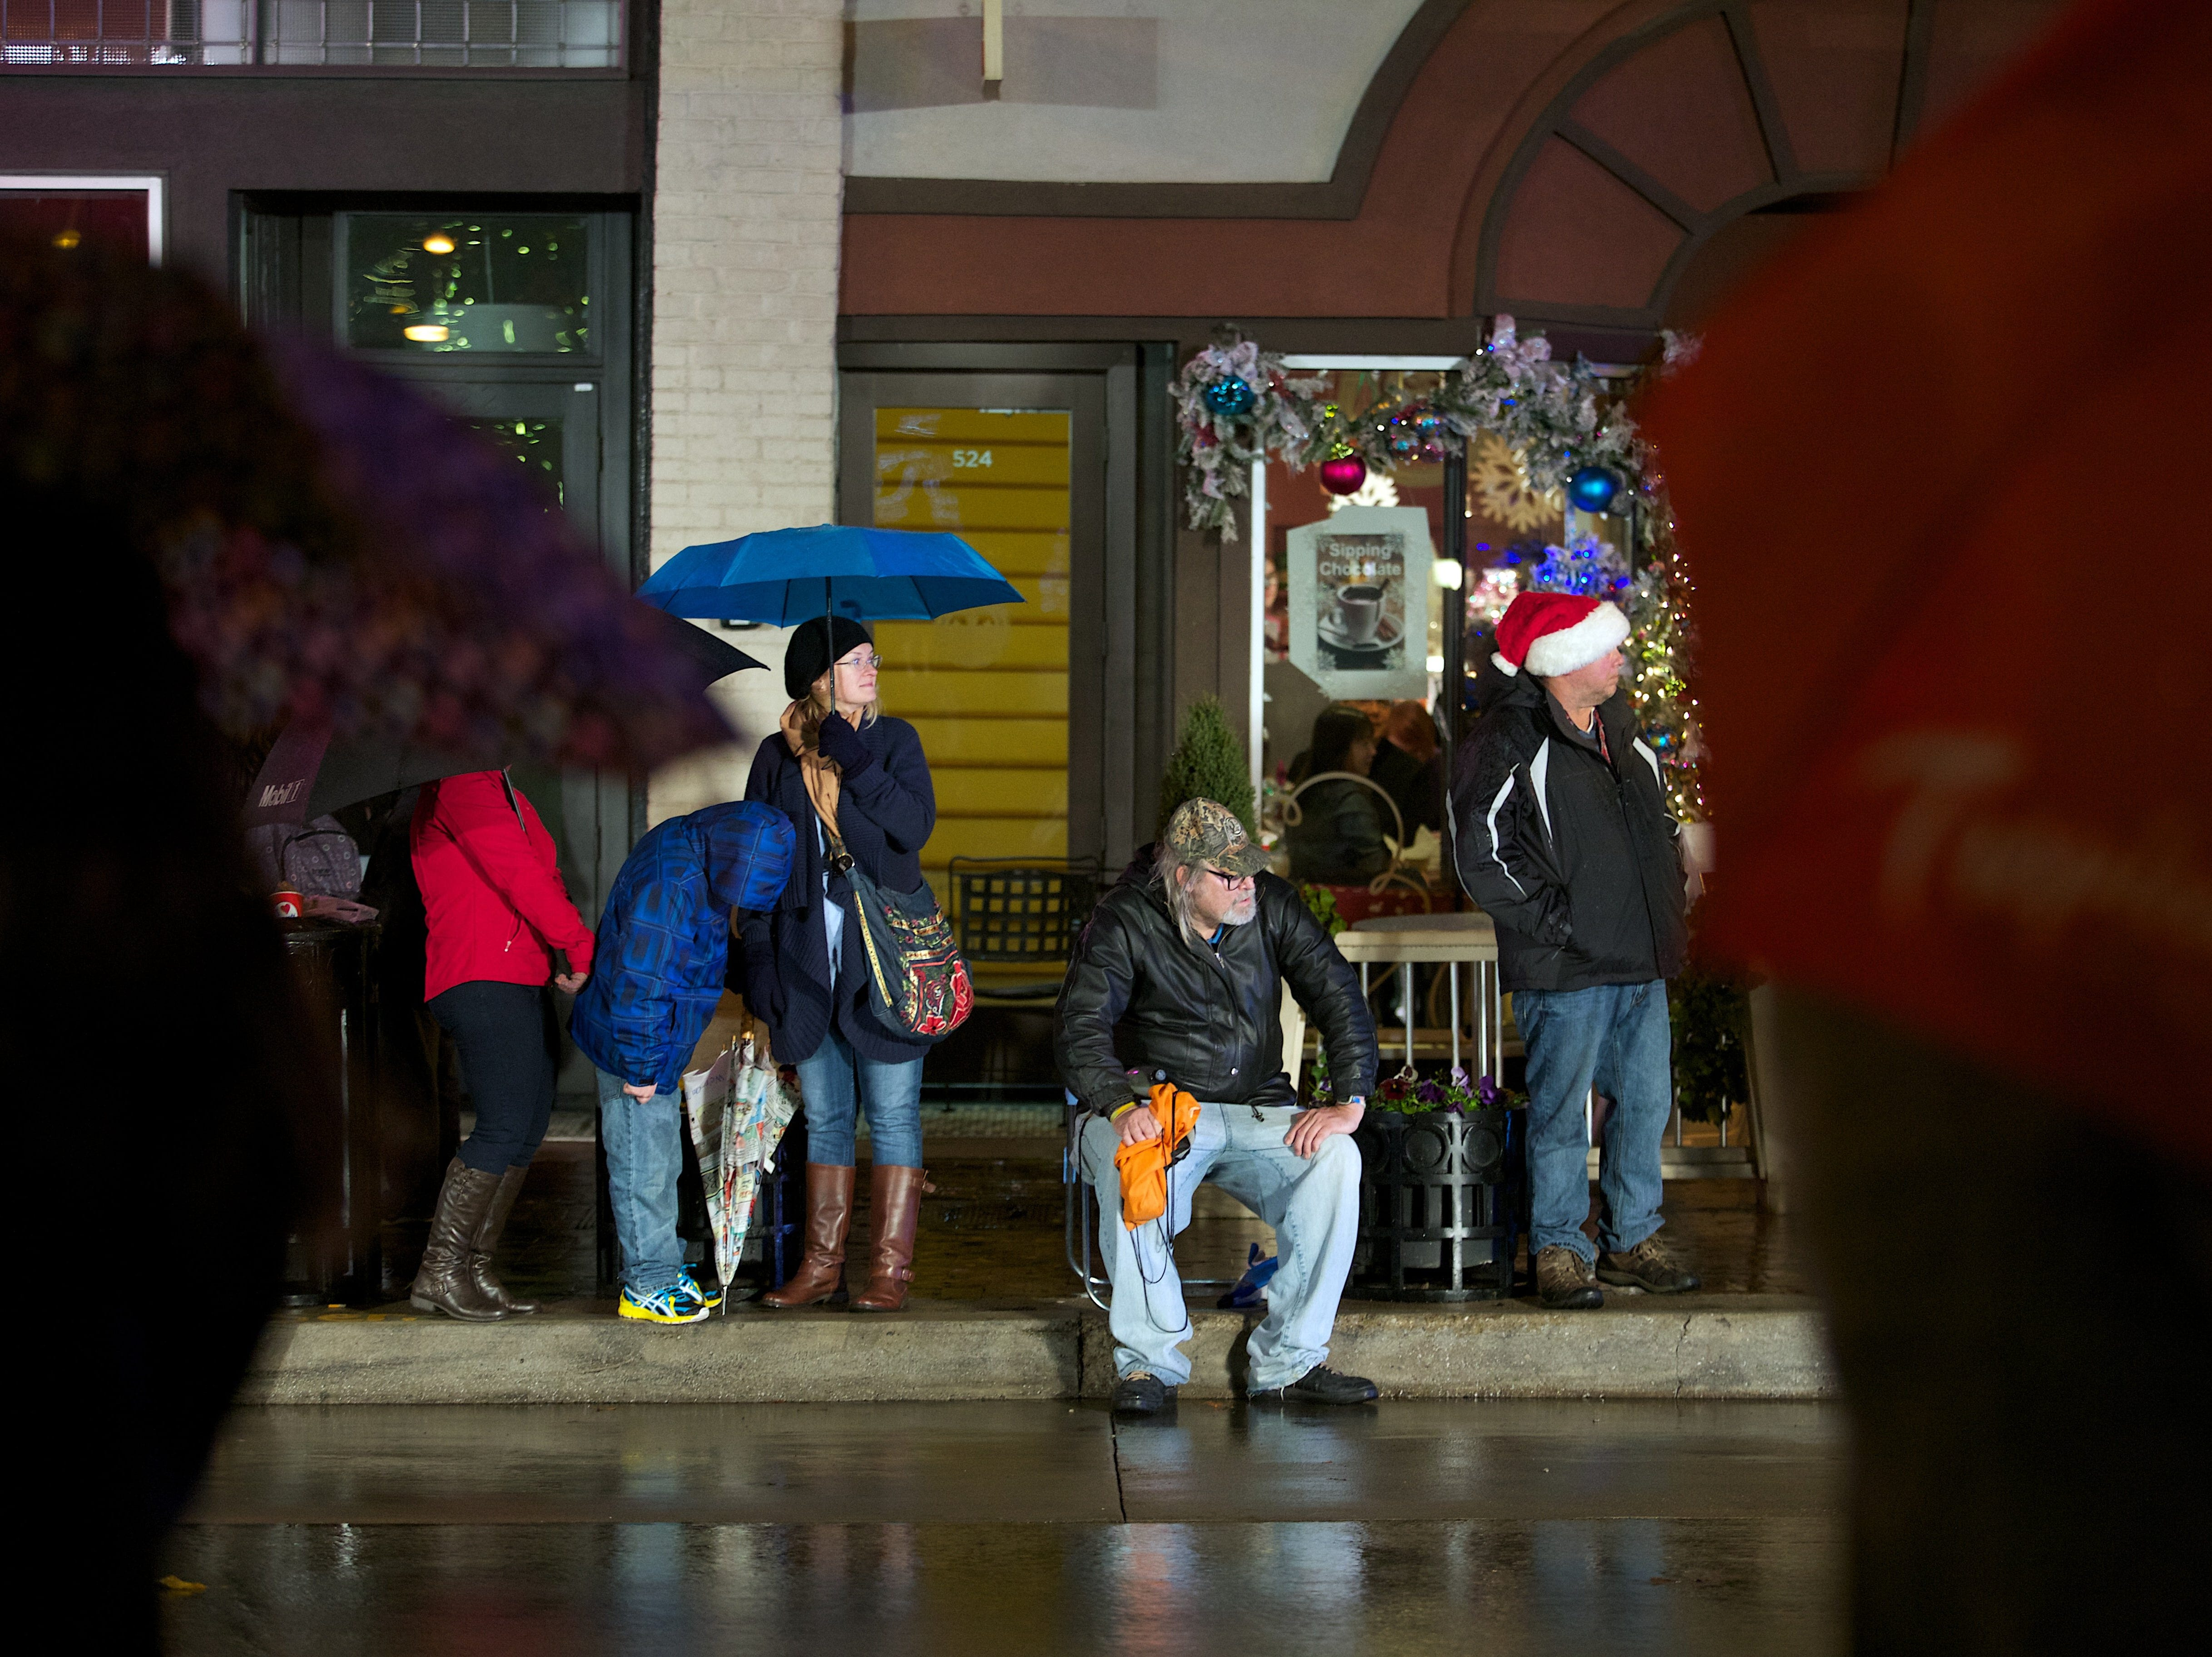 Eugene Cooper, center, waits along Gay Street in the rain for the start of the WIVK Christmas Parade in Knoxville, Tenn. on Friday, December 6, 2013.